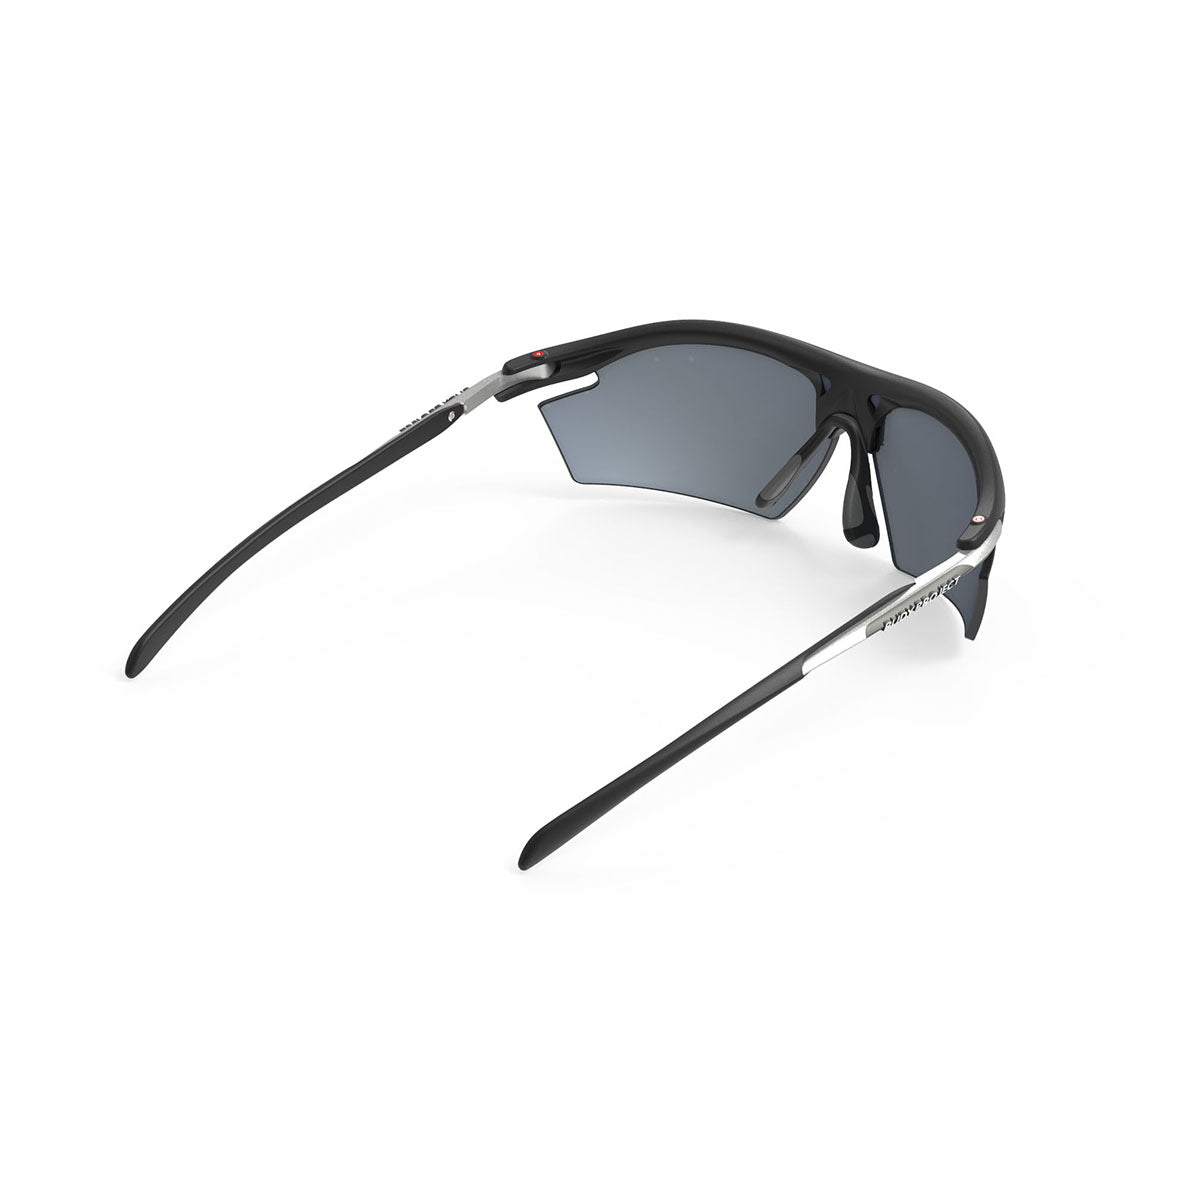 Rudy Project - Rydon - frame color: Matte Black - lens color: Laser Black - photo angle: Top Back Angle Variant Hover Image